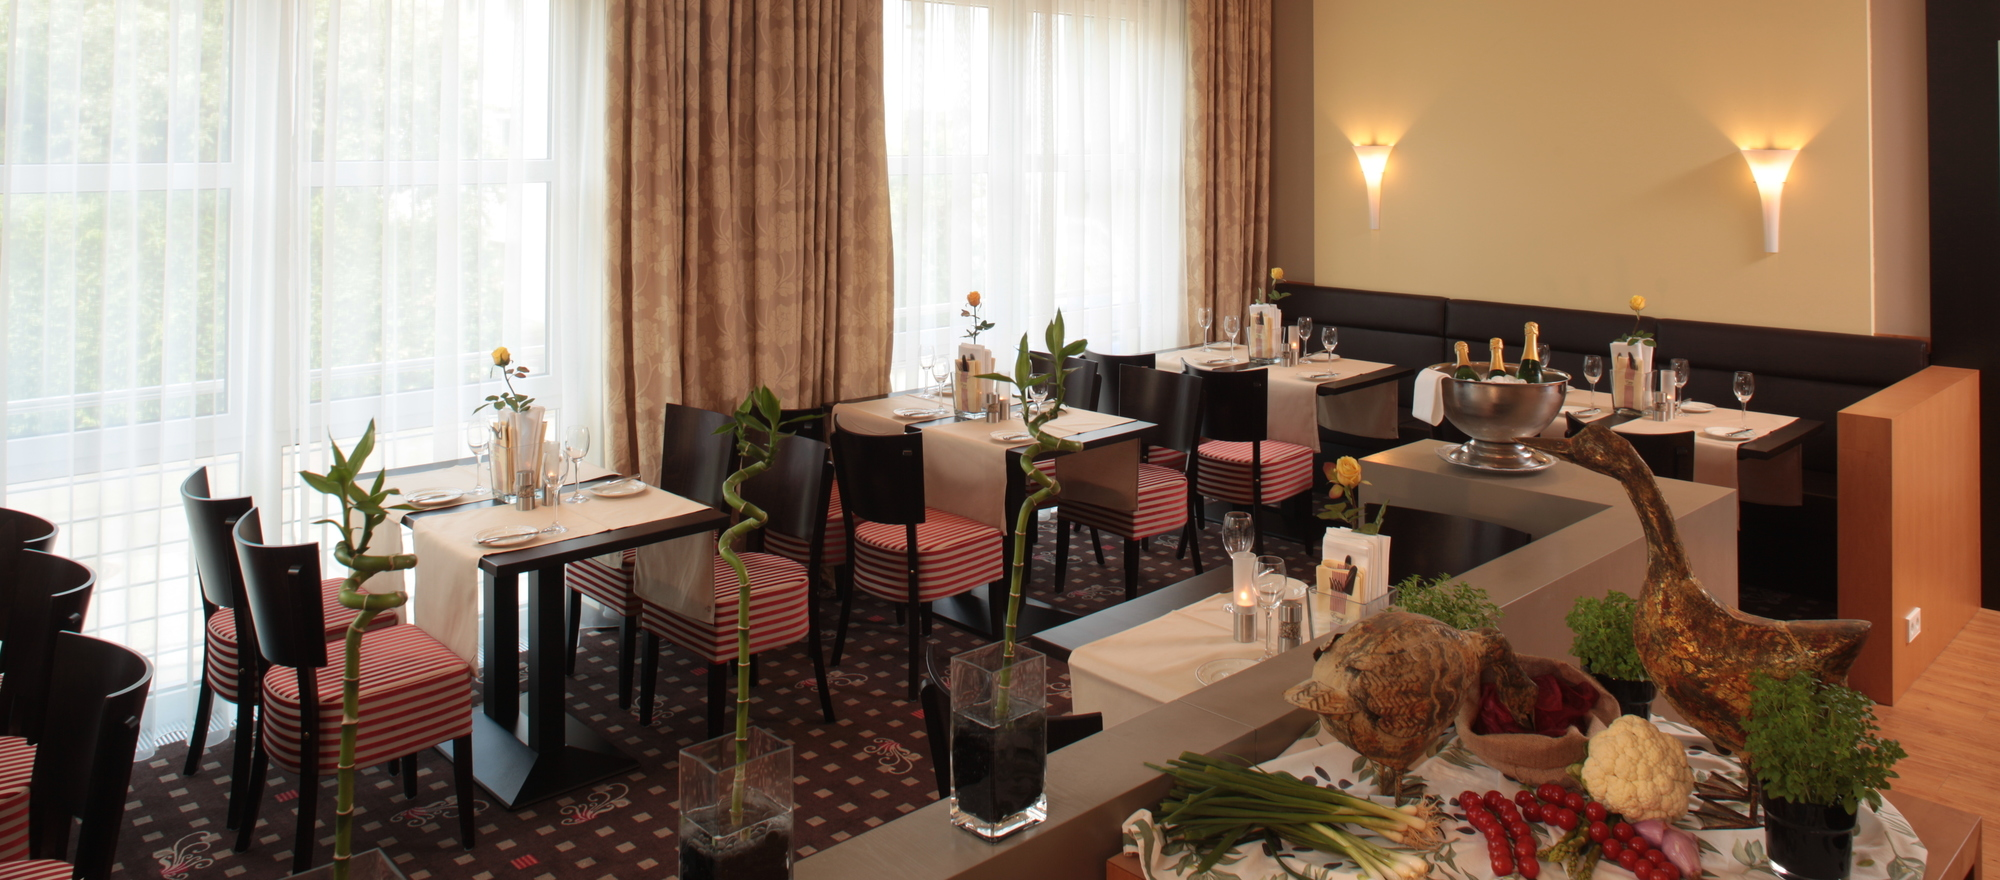 Small genteel bistro at the 4-star hotel Ringhotel Bundschu in Bad Mergentheim